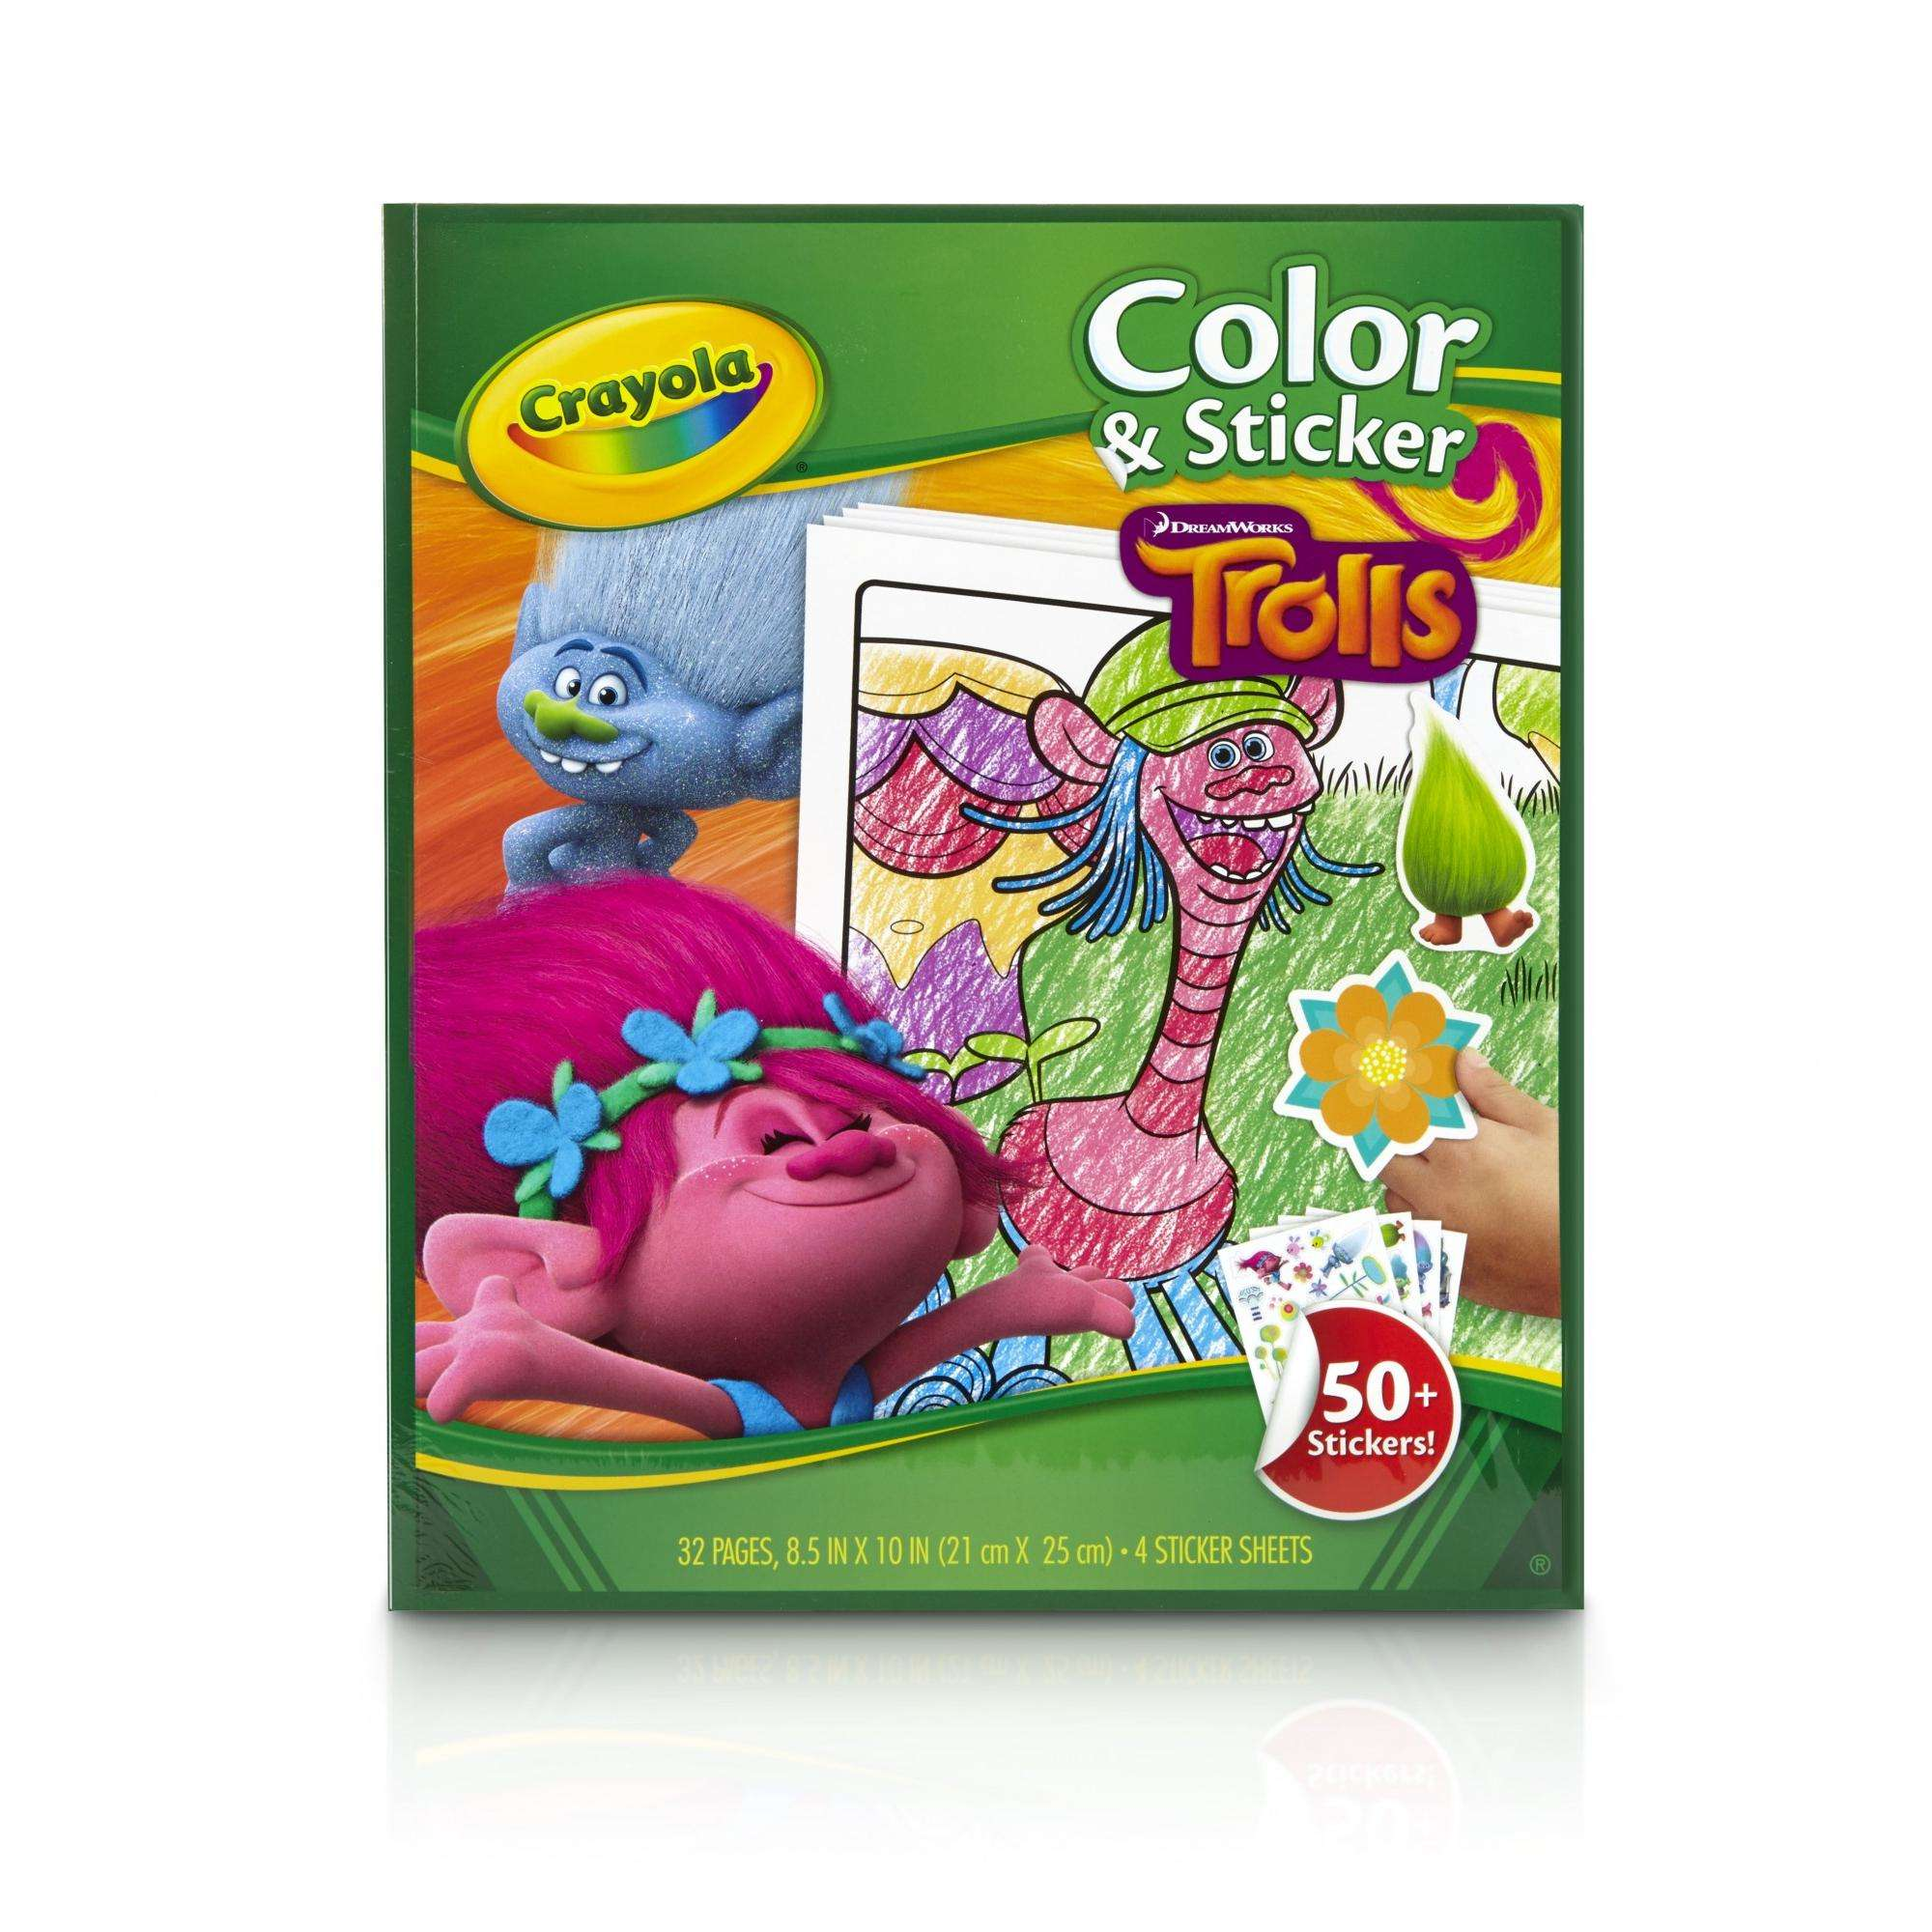 Crayola Trolls Coloring & Sticker Book, 32 Pages, 50+ Stickers